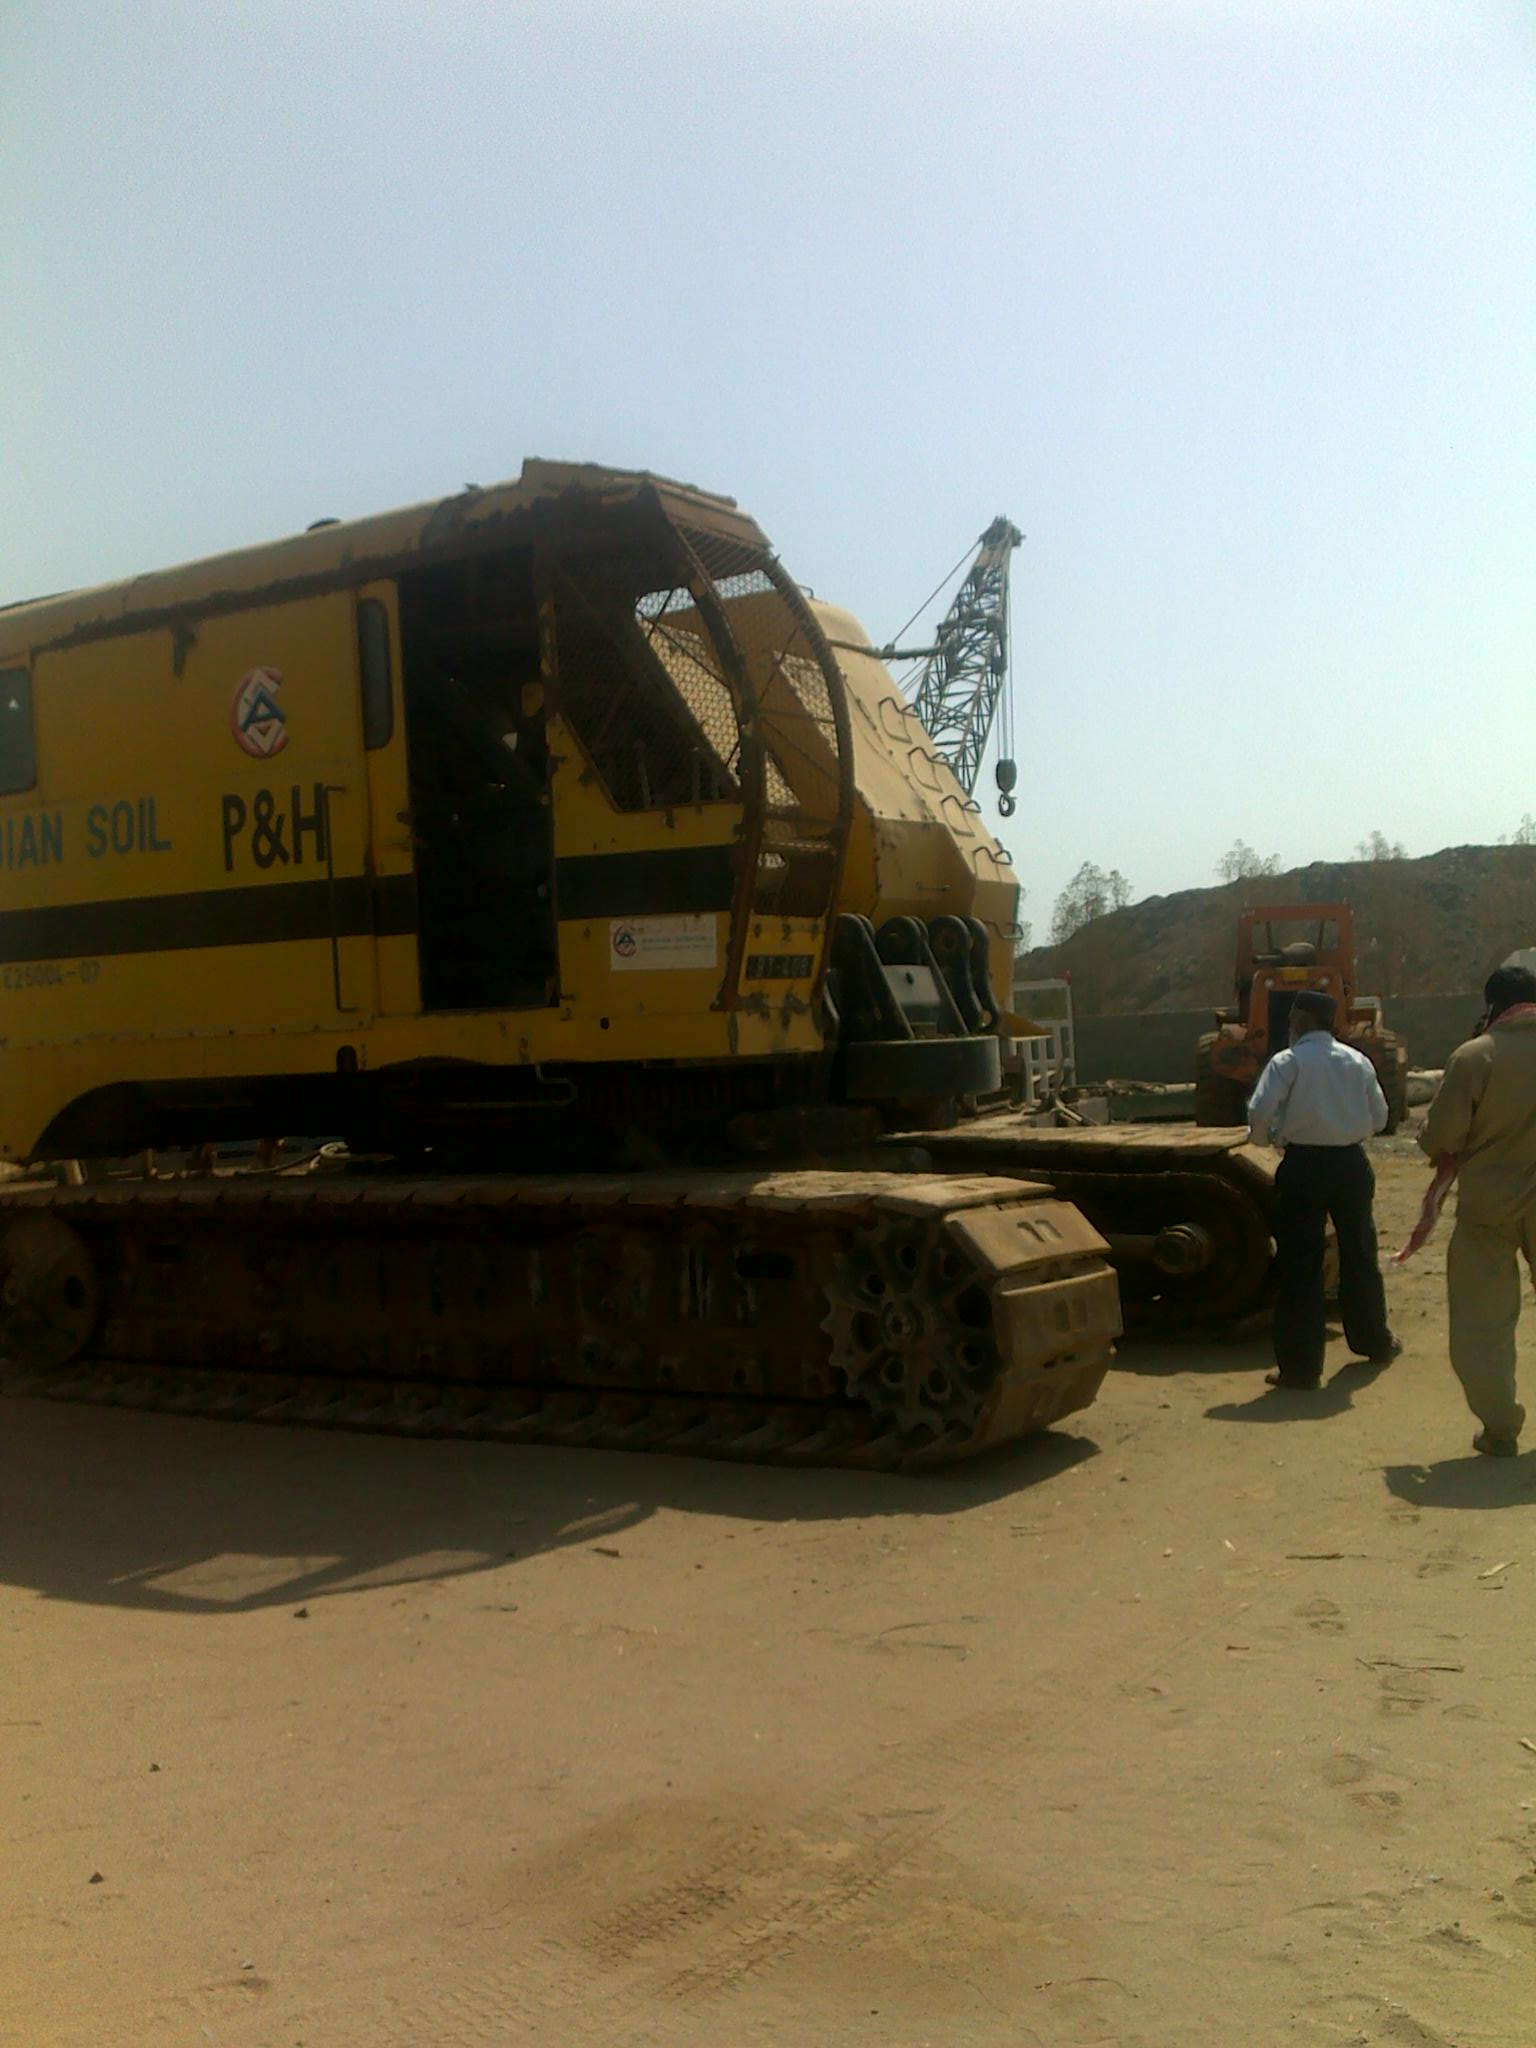 P&H 995 ALC CRAWLER CRANE